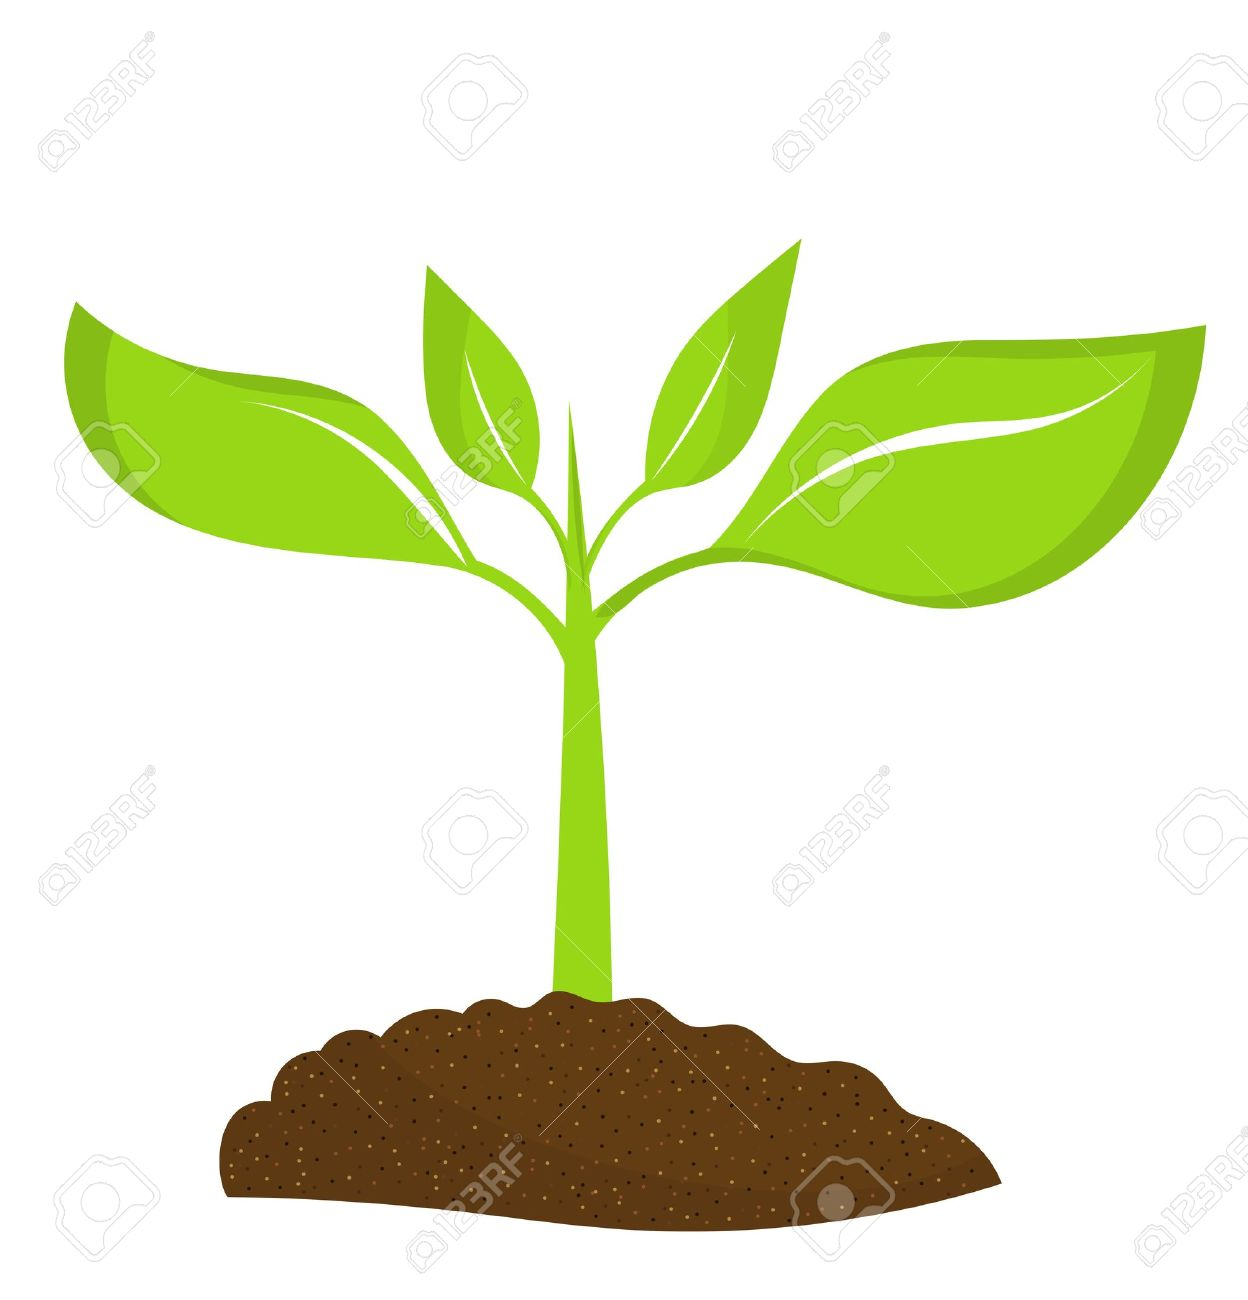 seedling tree clipart - Clipground